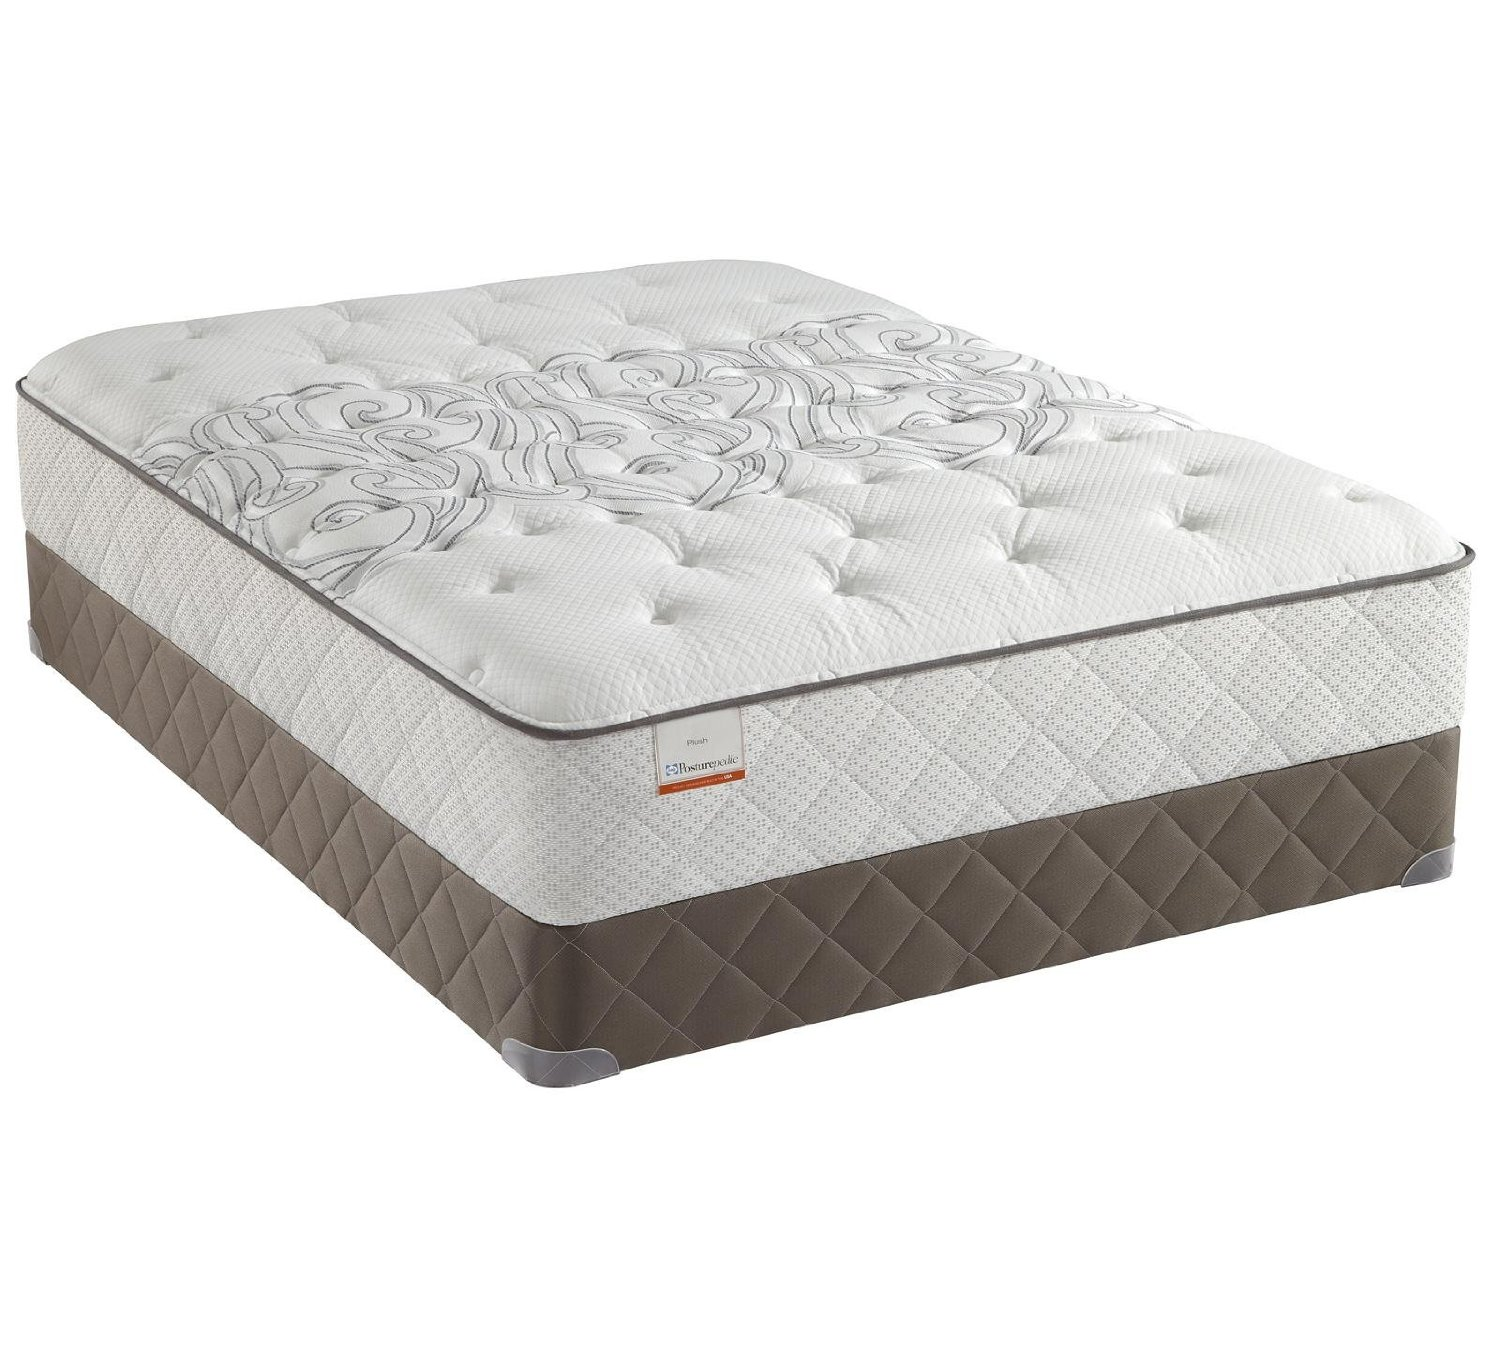 Best Unbiased Sealy Posturepedic Mattress Reviews 2018